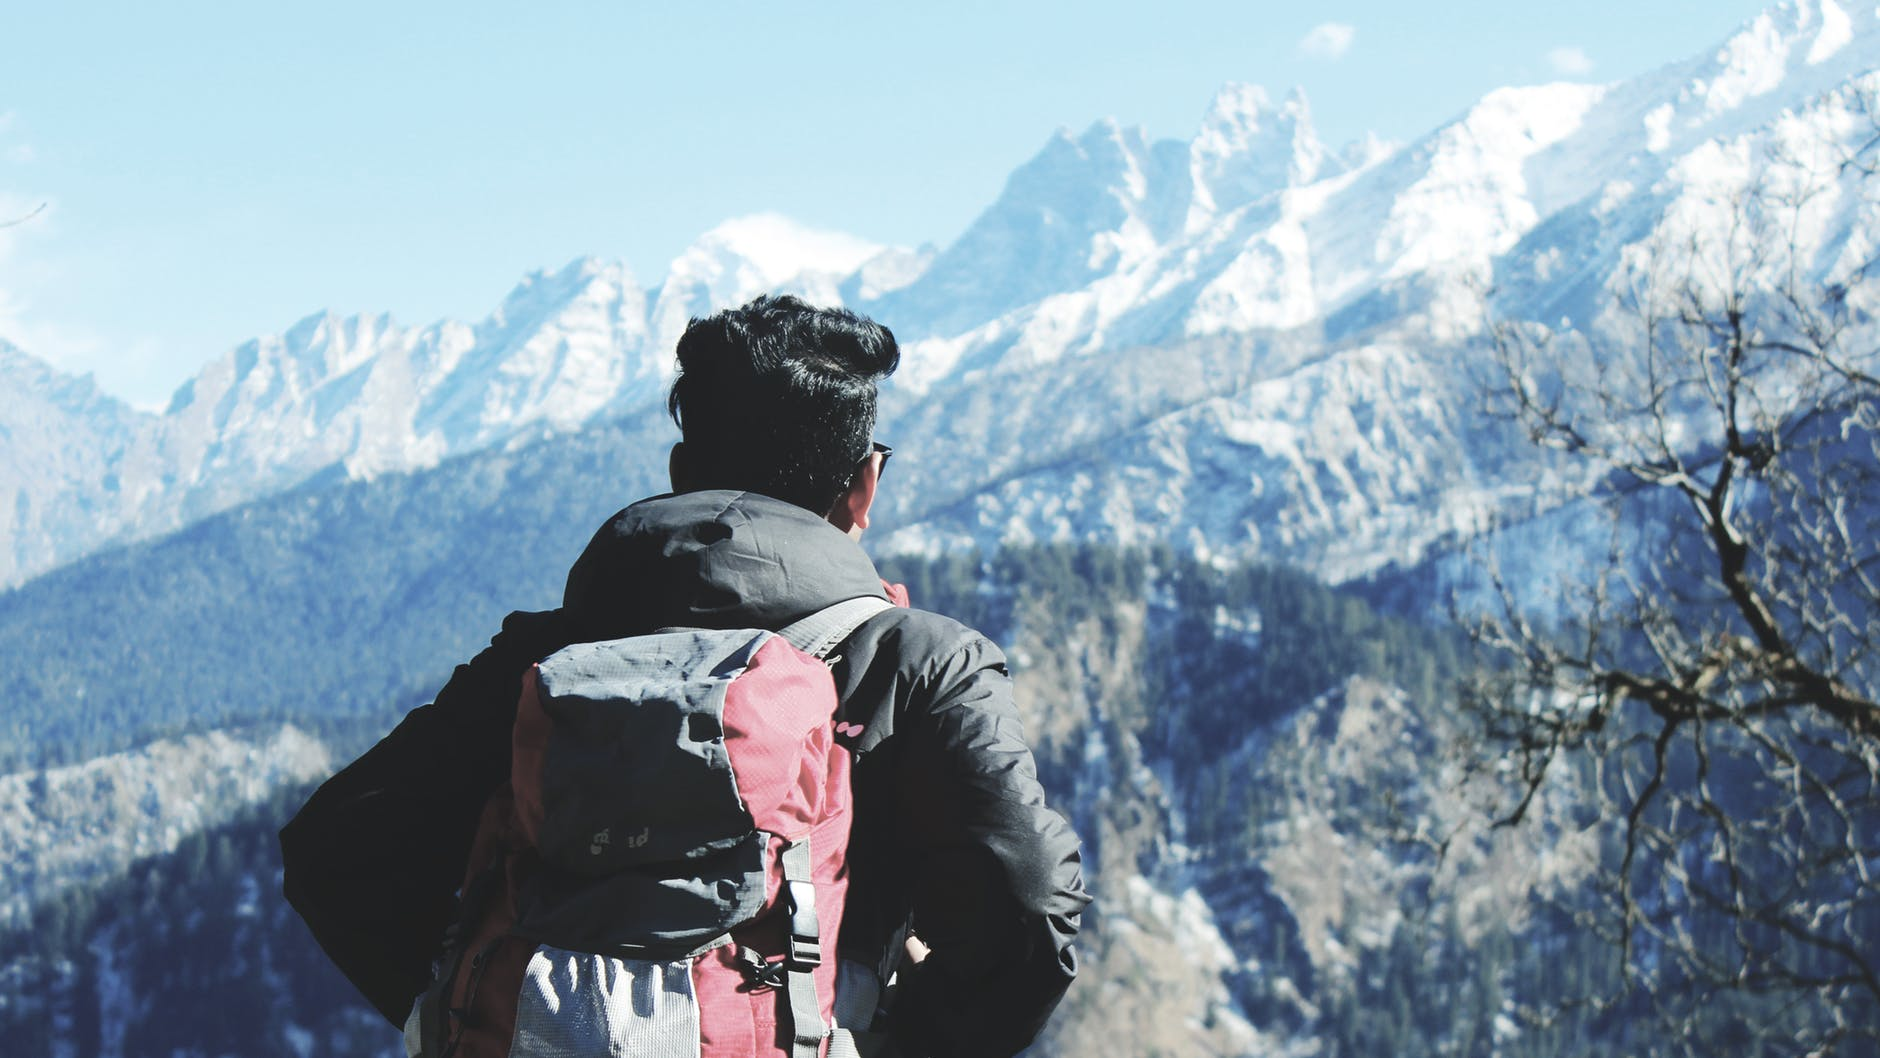 photography of man in black hooded jacket and red backpack facing snow covered mountain